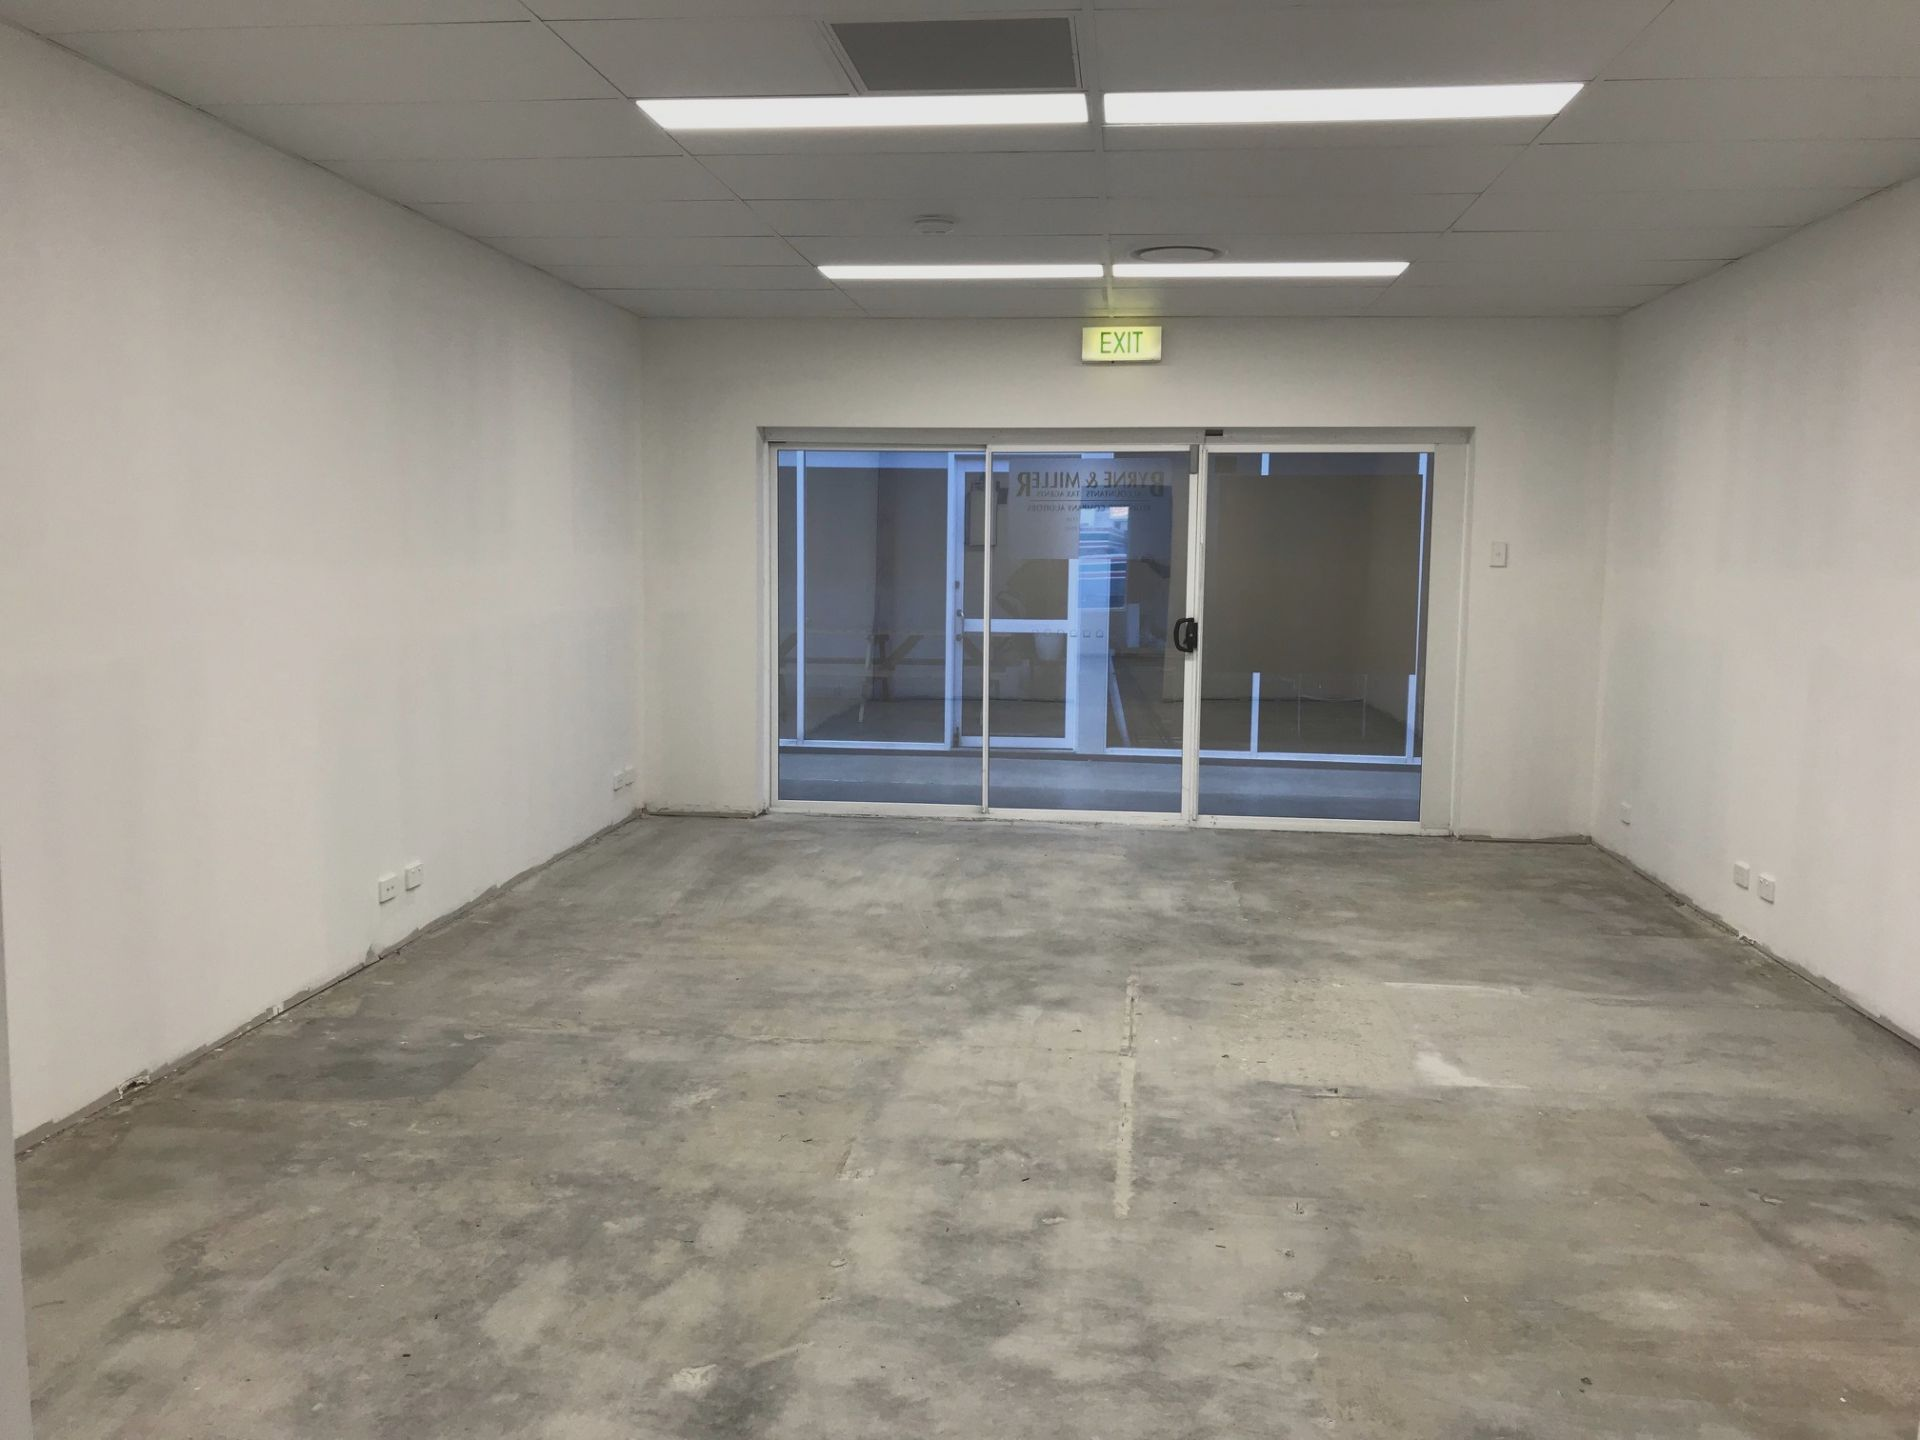 Open Plan First Floor Office in 8th Avenue Plaza